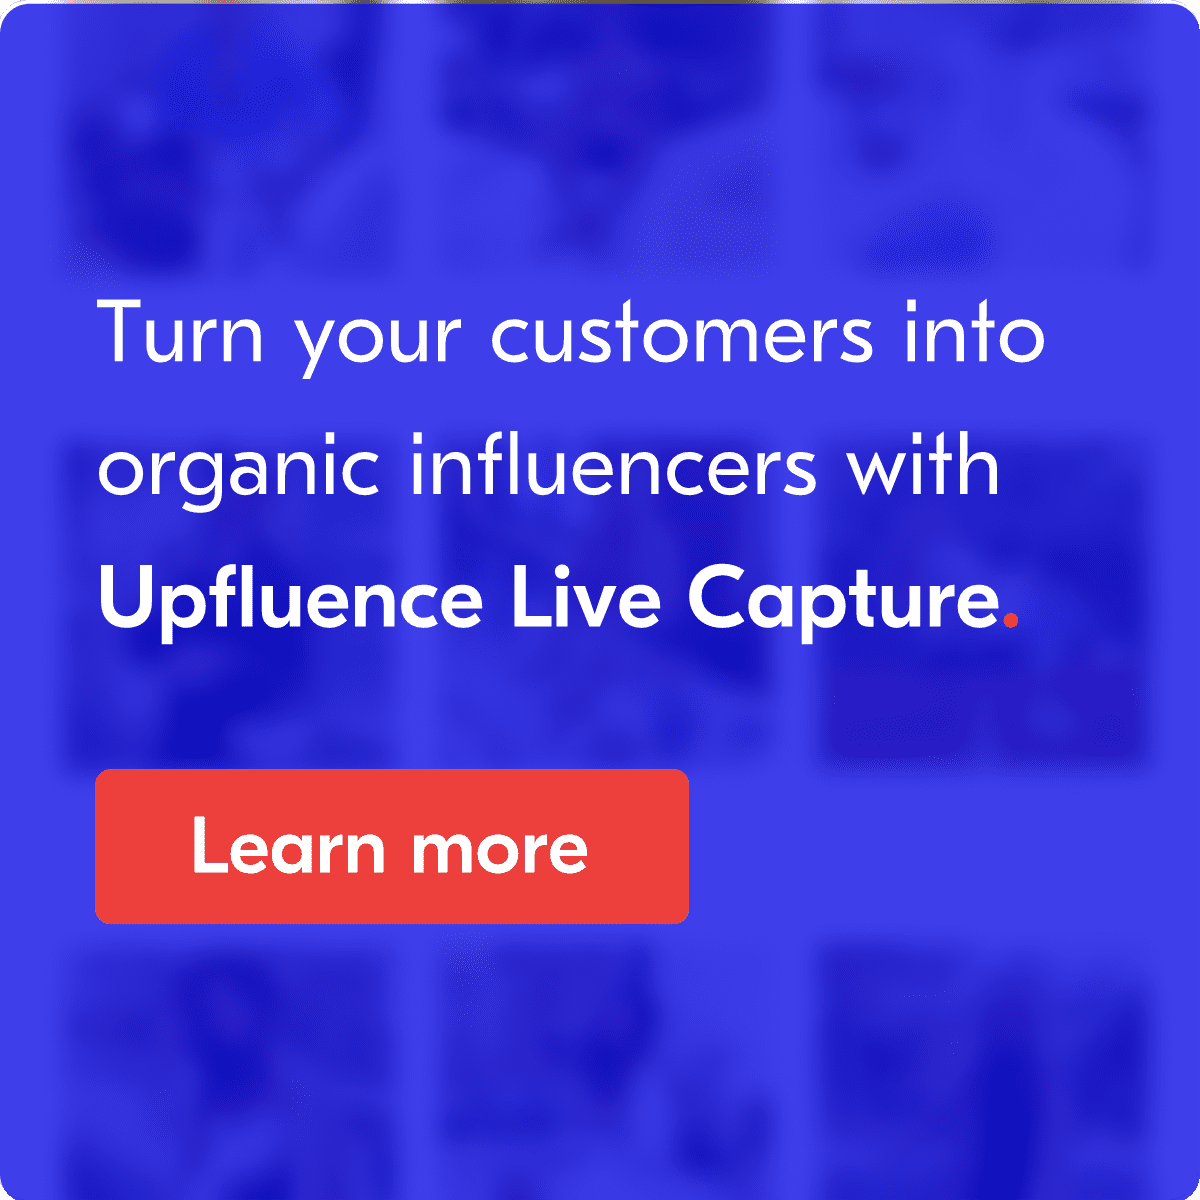 turn customers into influencers with live capture